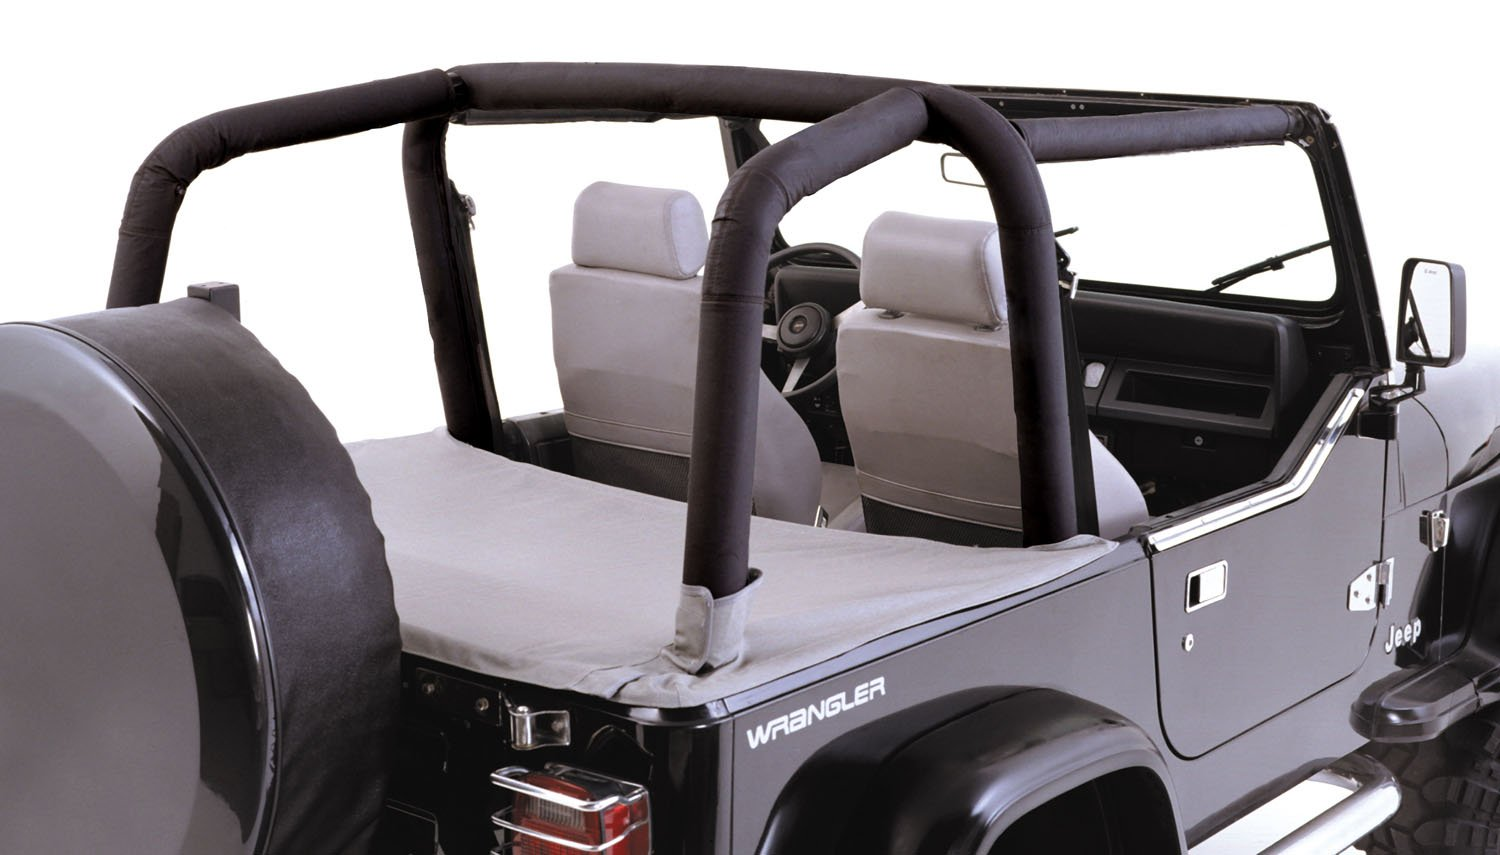 Outland 391361215 Full Roll Bar Cover Kit for Jeep TJ Wrangler